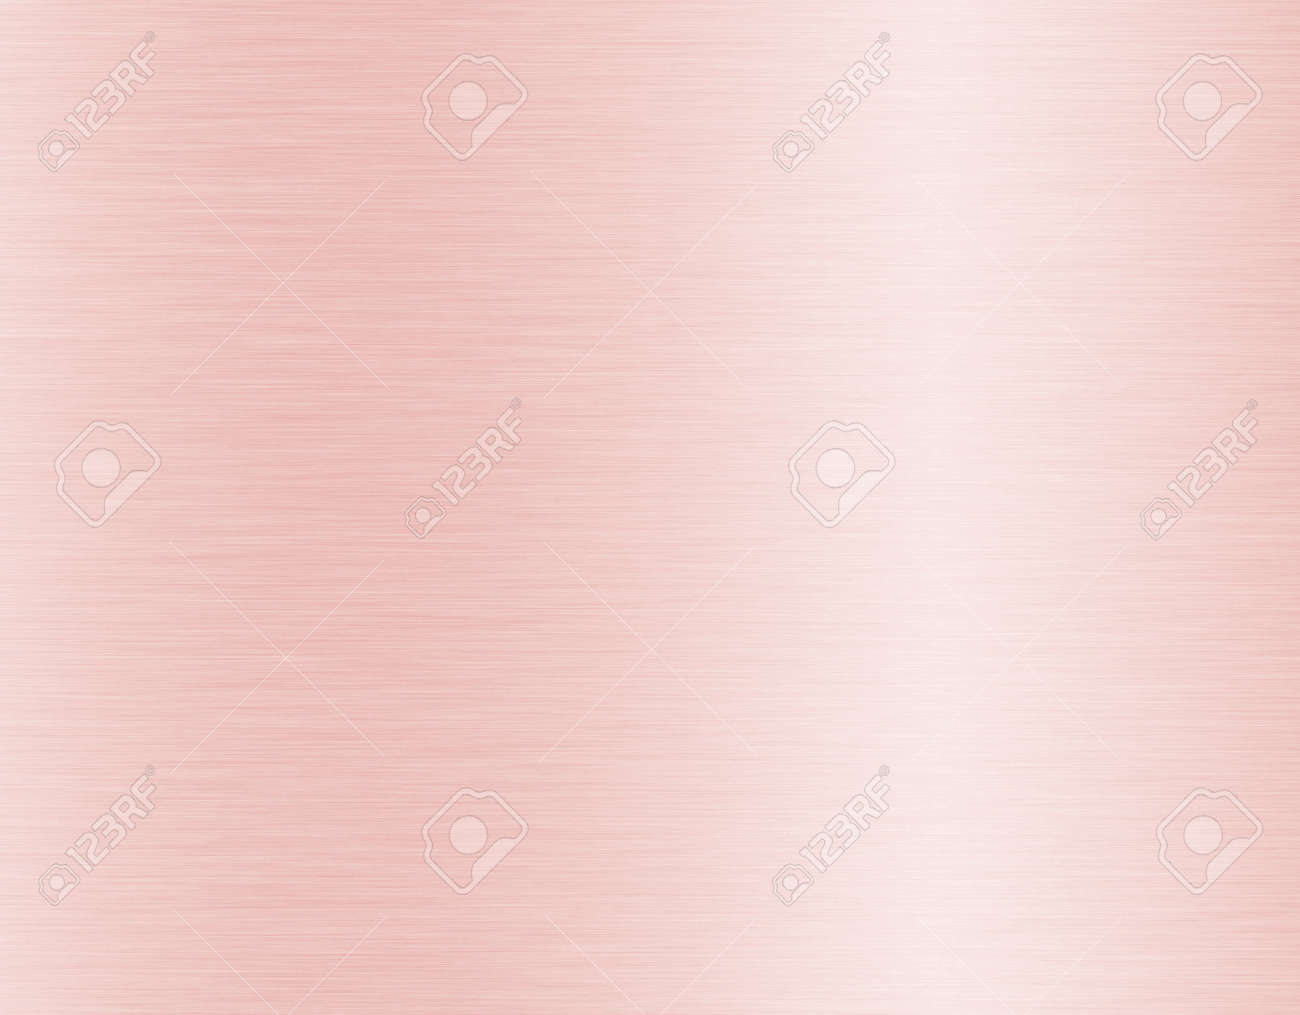 metal, stainless steel texture background with reflection - 129871779